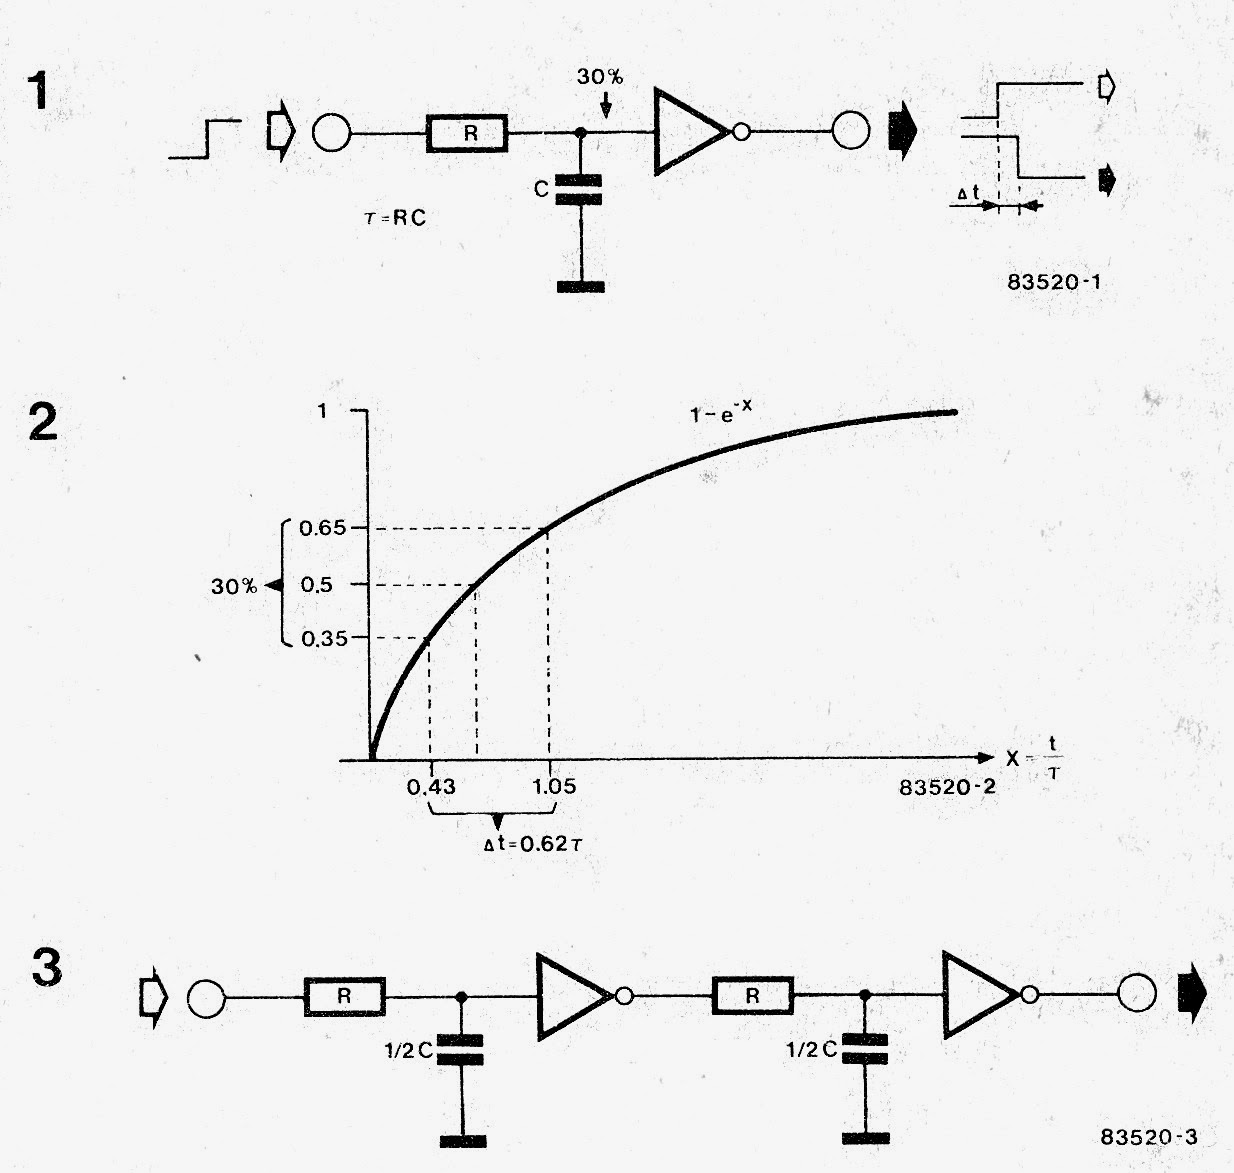 Timing Circuits Schematics 555 Timer In Monostable Mode Circuit Diagram Electronicshuborg Simple Delay How To Make And Calculate 1234x1173